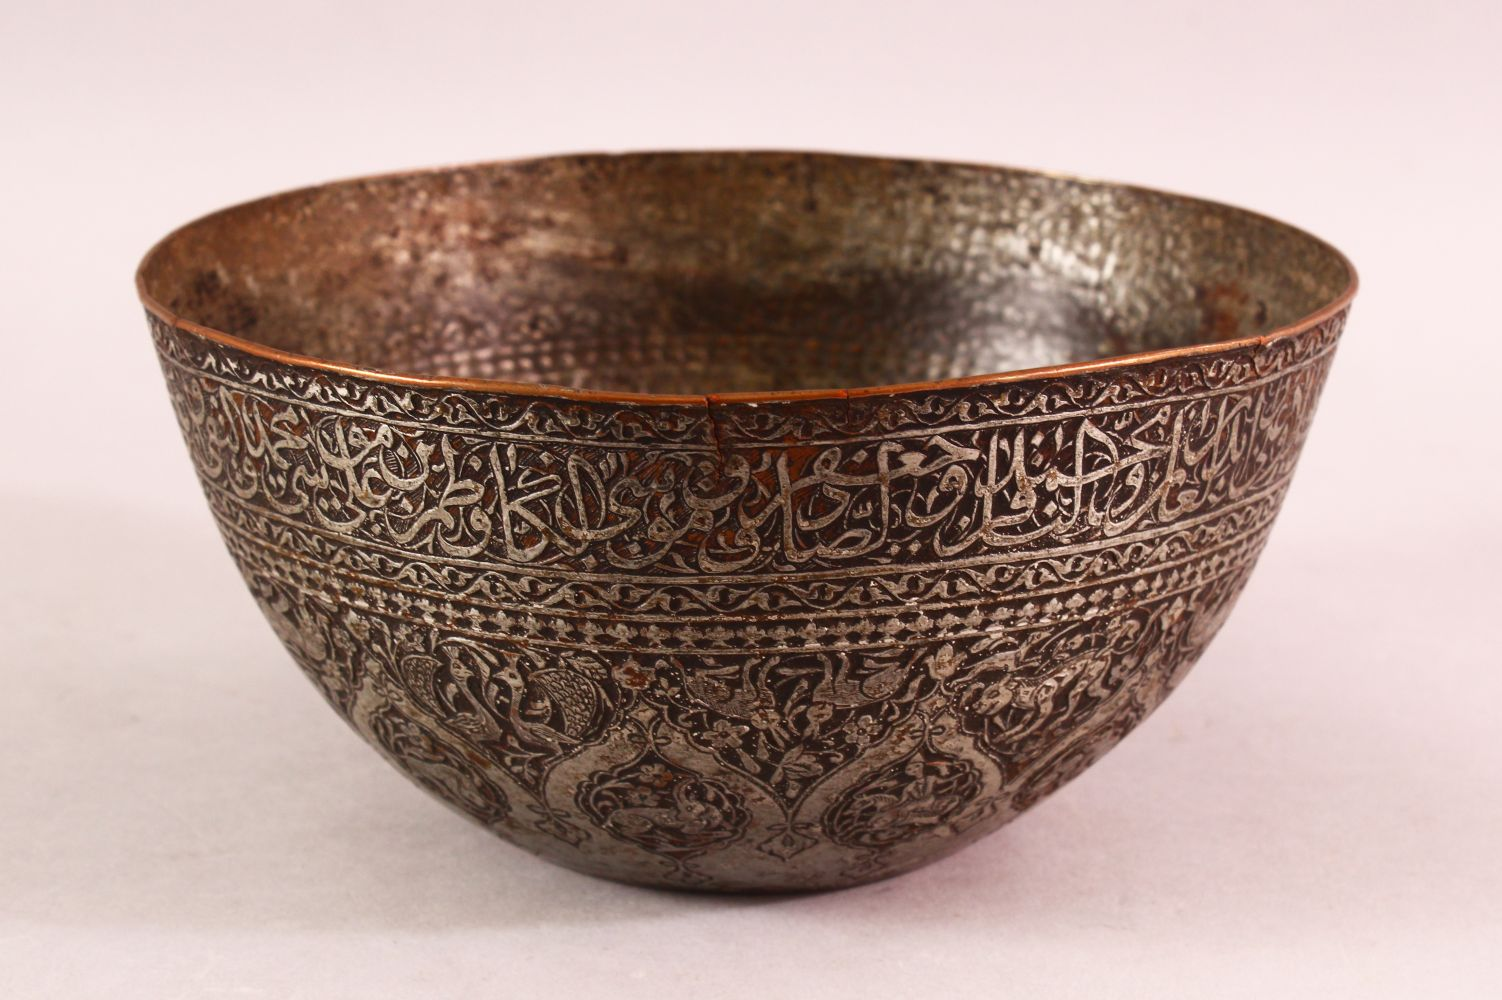 A GOOD ZANDI TINNED COPPER ENGRAVED CALLIGRAPHIC BOWL, with bands of calligraphy, 19cm diameter,